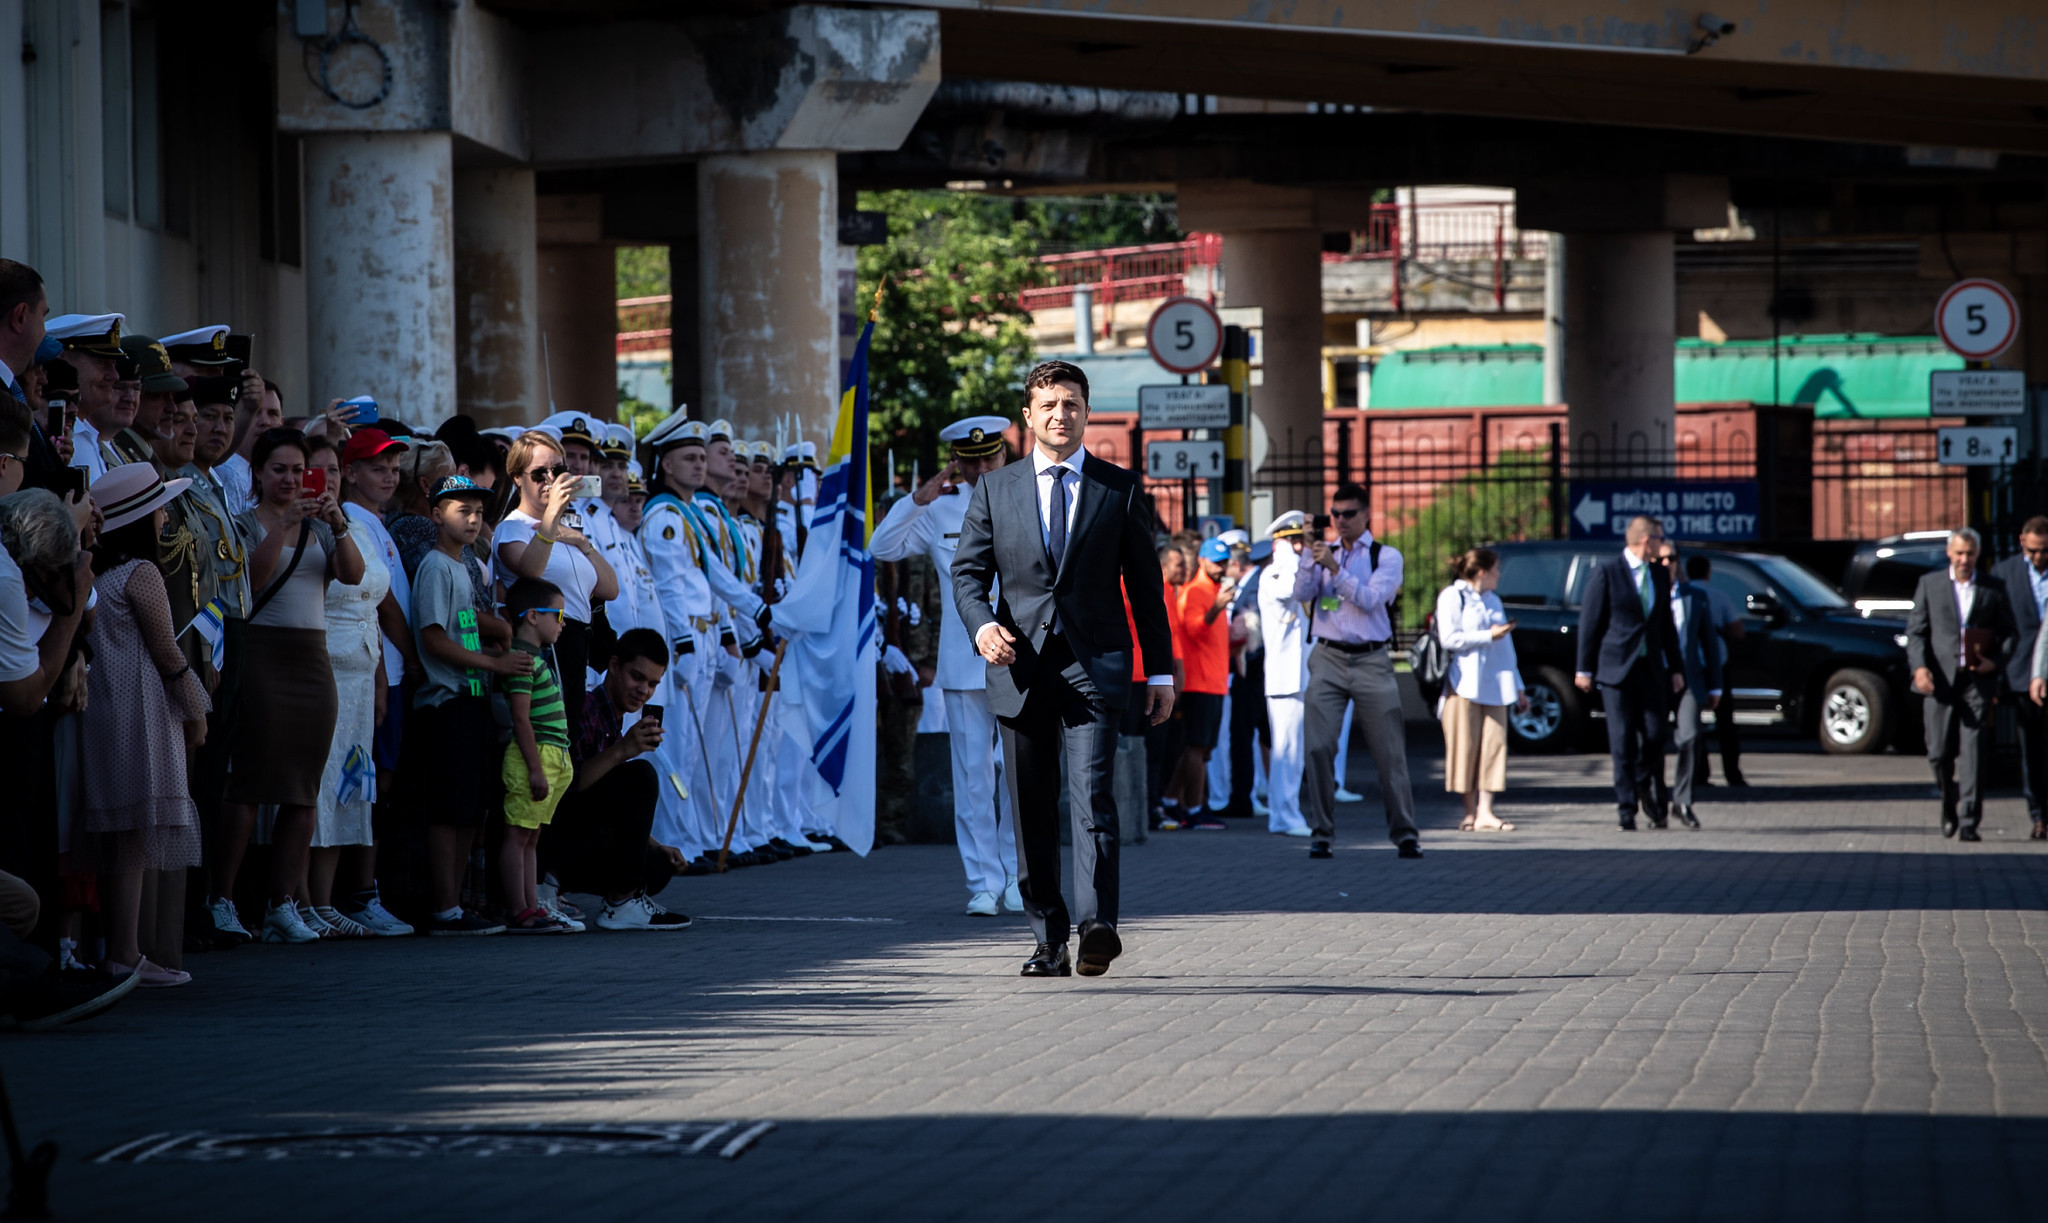 ODESA, Ukraine (July 7, 2019) — President of Ukraine, Volodymyr Zelenskyy, visits ships from exercise Sea Breeze 2019 participating nations during Ukrainian Navy Day in Odesa, Ukraine, July 7, 2019. Sea Breeze is a U.S. and Ukraine co-hosted multinational maritime exercise held in the Black Sea, designed to enhance interoperability of participating nations and strengthen maritime security and peace within the region. (U.S. Navy photo by Mass Communication Specialist 3rd Class T. Logan Keown/Released)